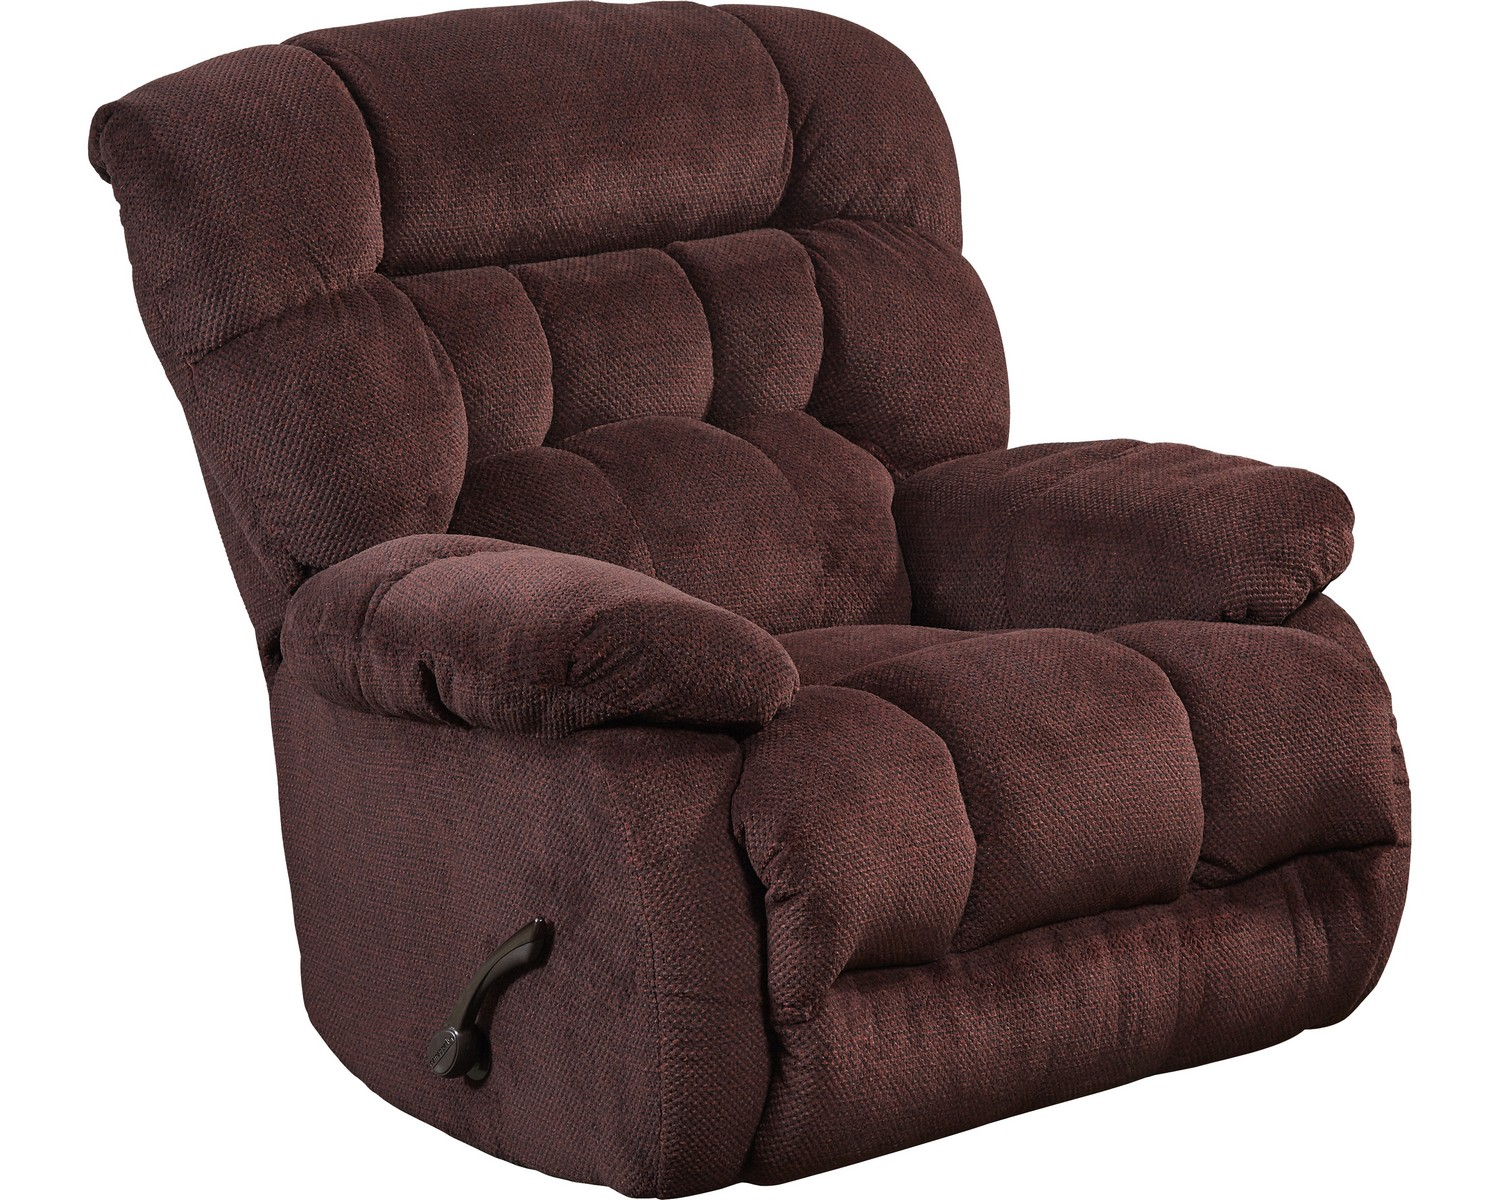 CatNapper Daly Chaise Rocker Recliner - Cranapple